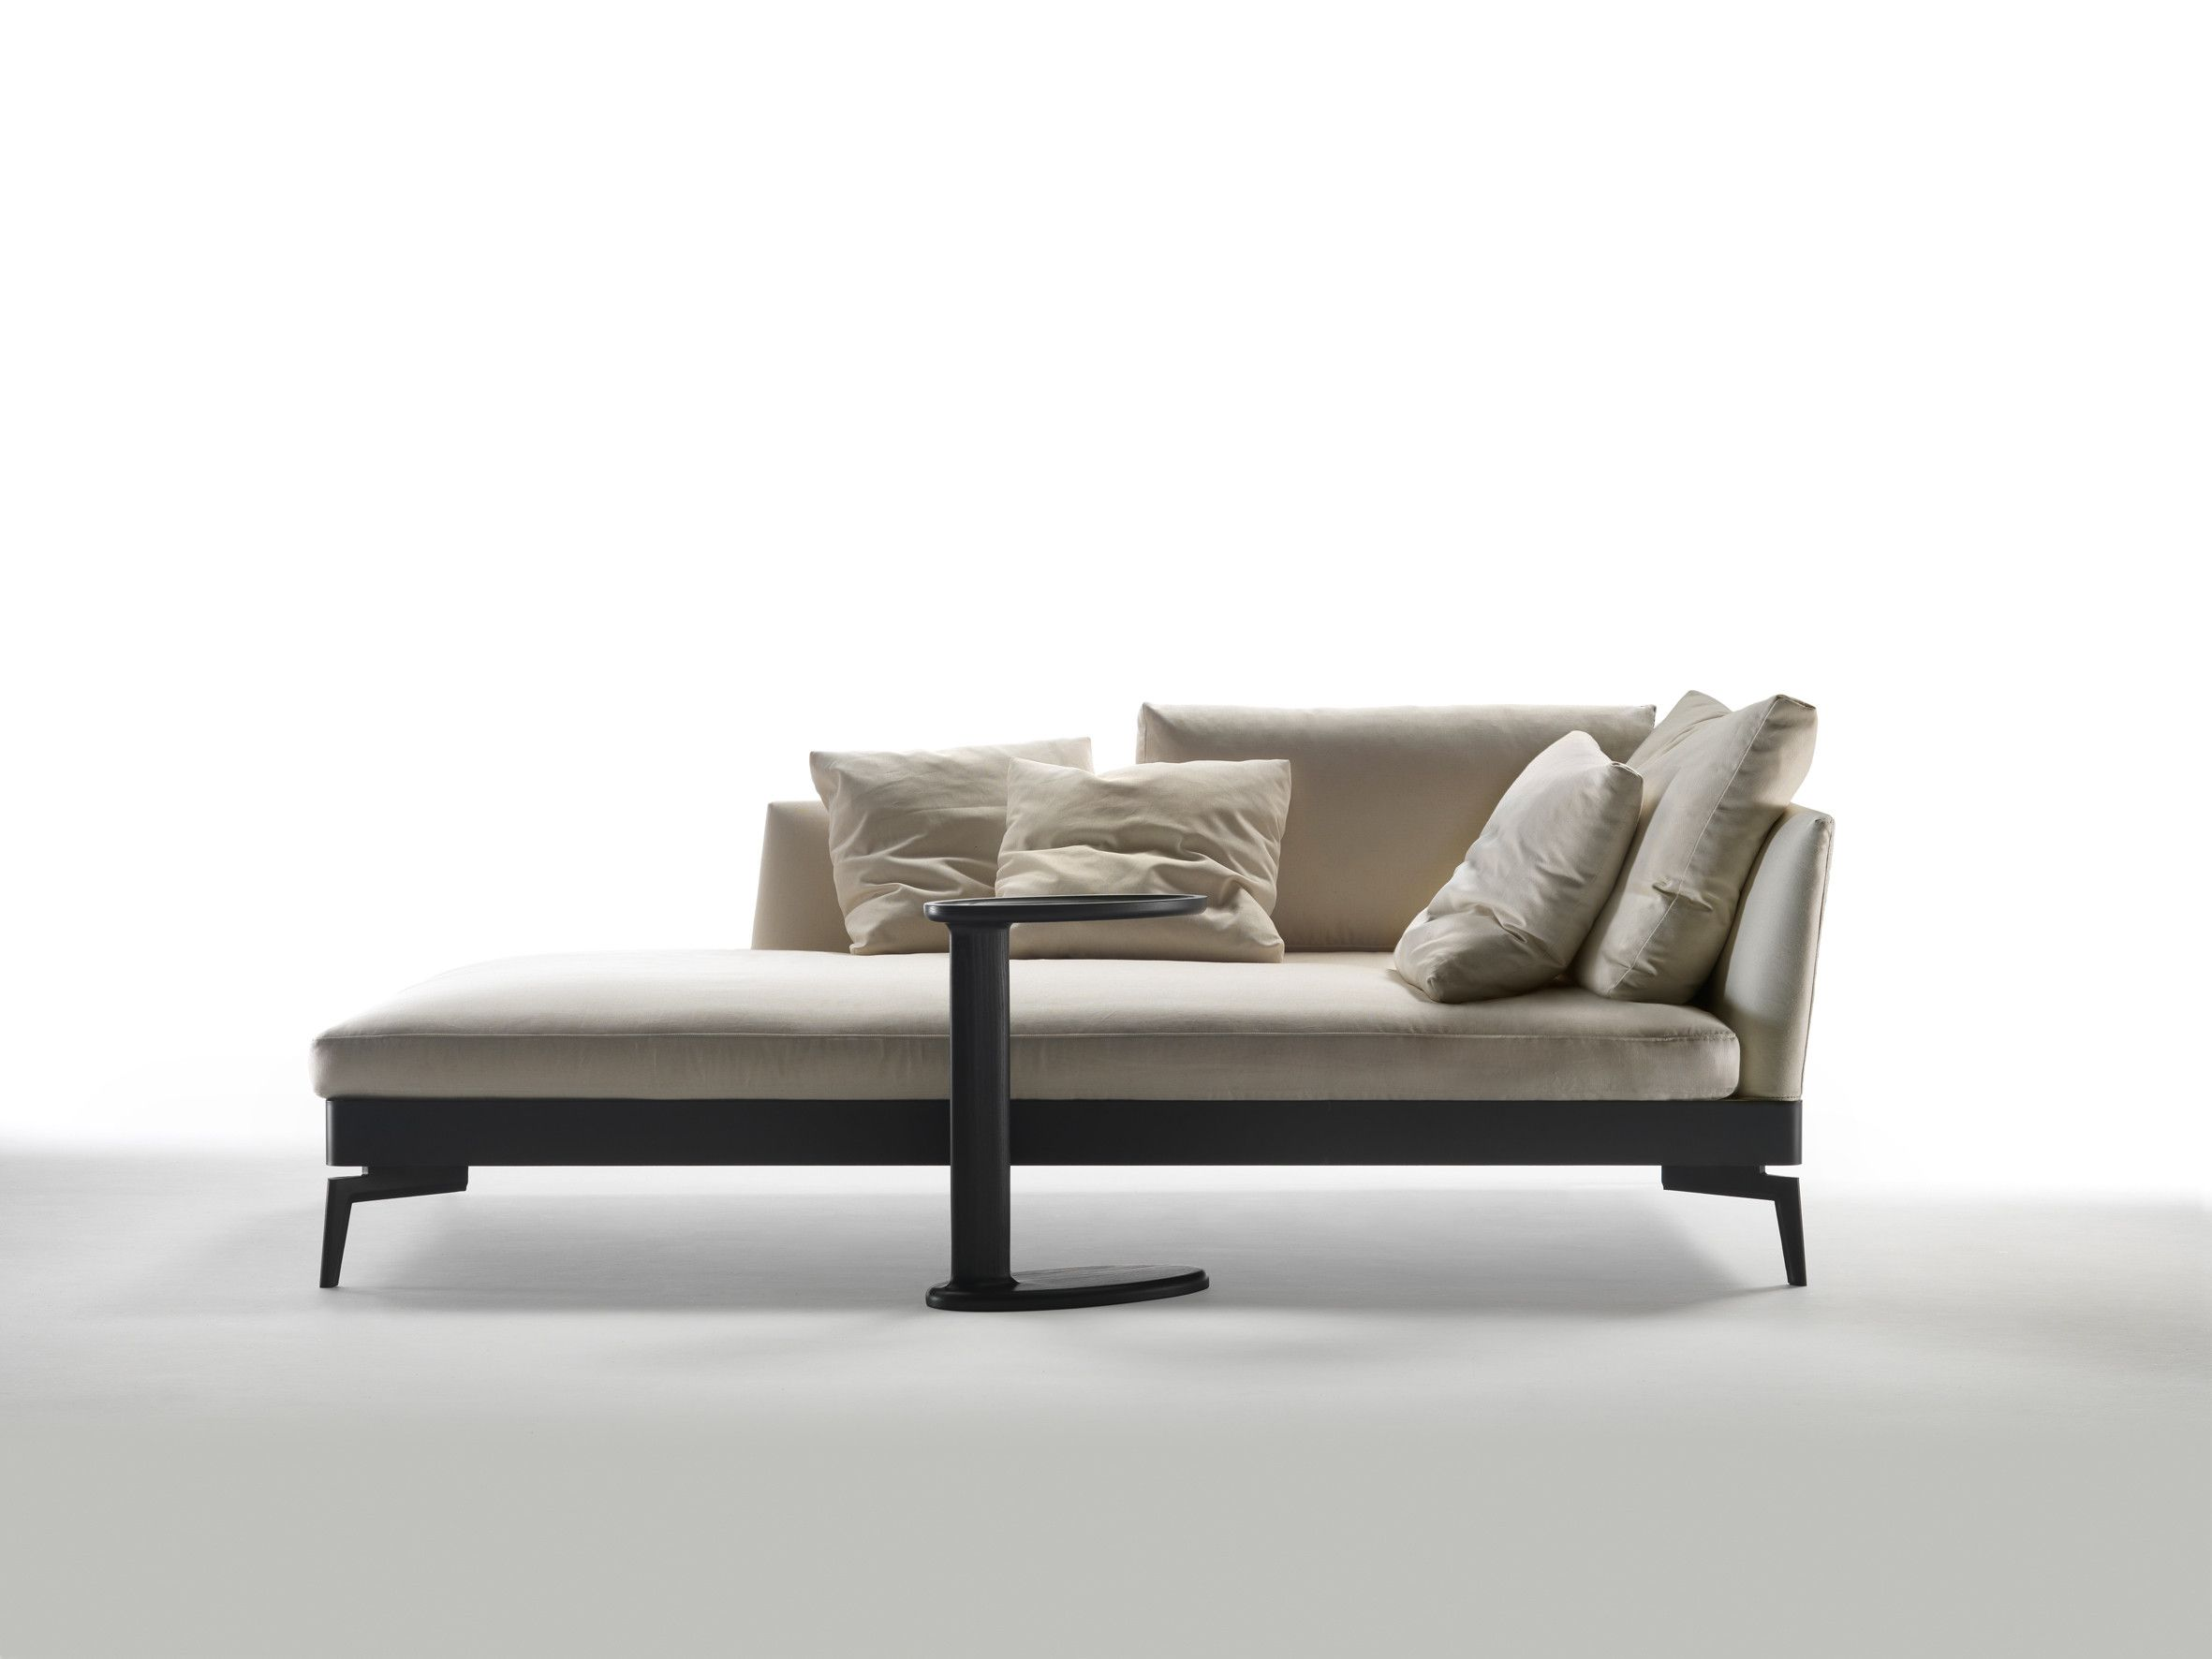 Flexform Feel Good Sessel Preis Feel Good Chaise By Flexform Via Designresource Co Furniture